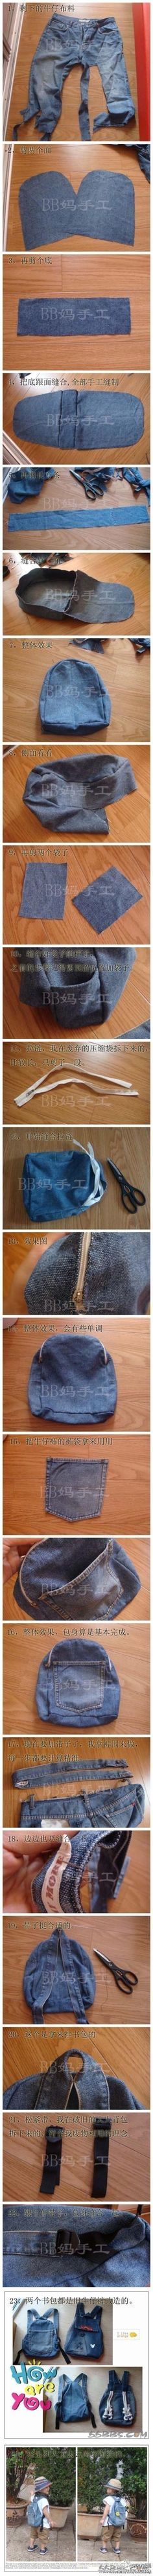 DIY Tutorial DIY jeans refashion / DIY Jean refashion - Bead&Cord